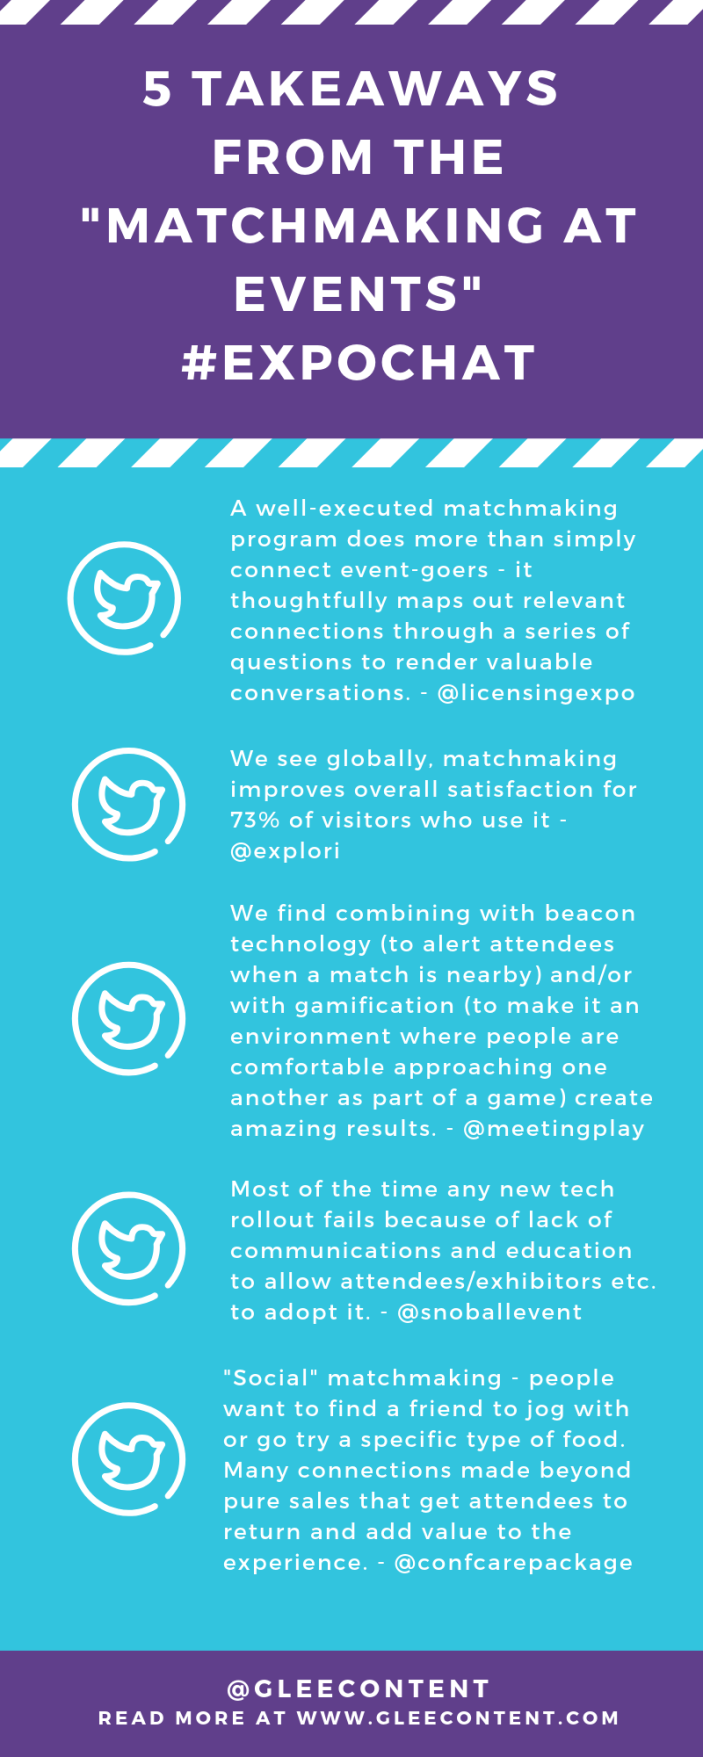 3 TakeAways from matchmaking #expochat